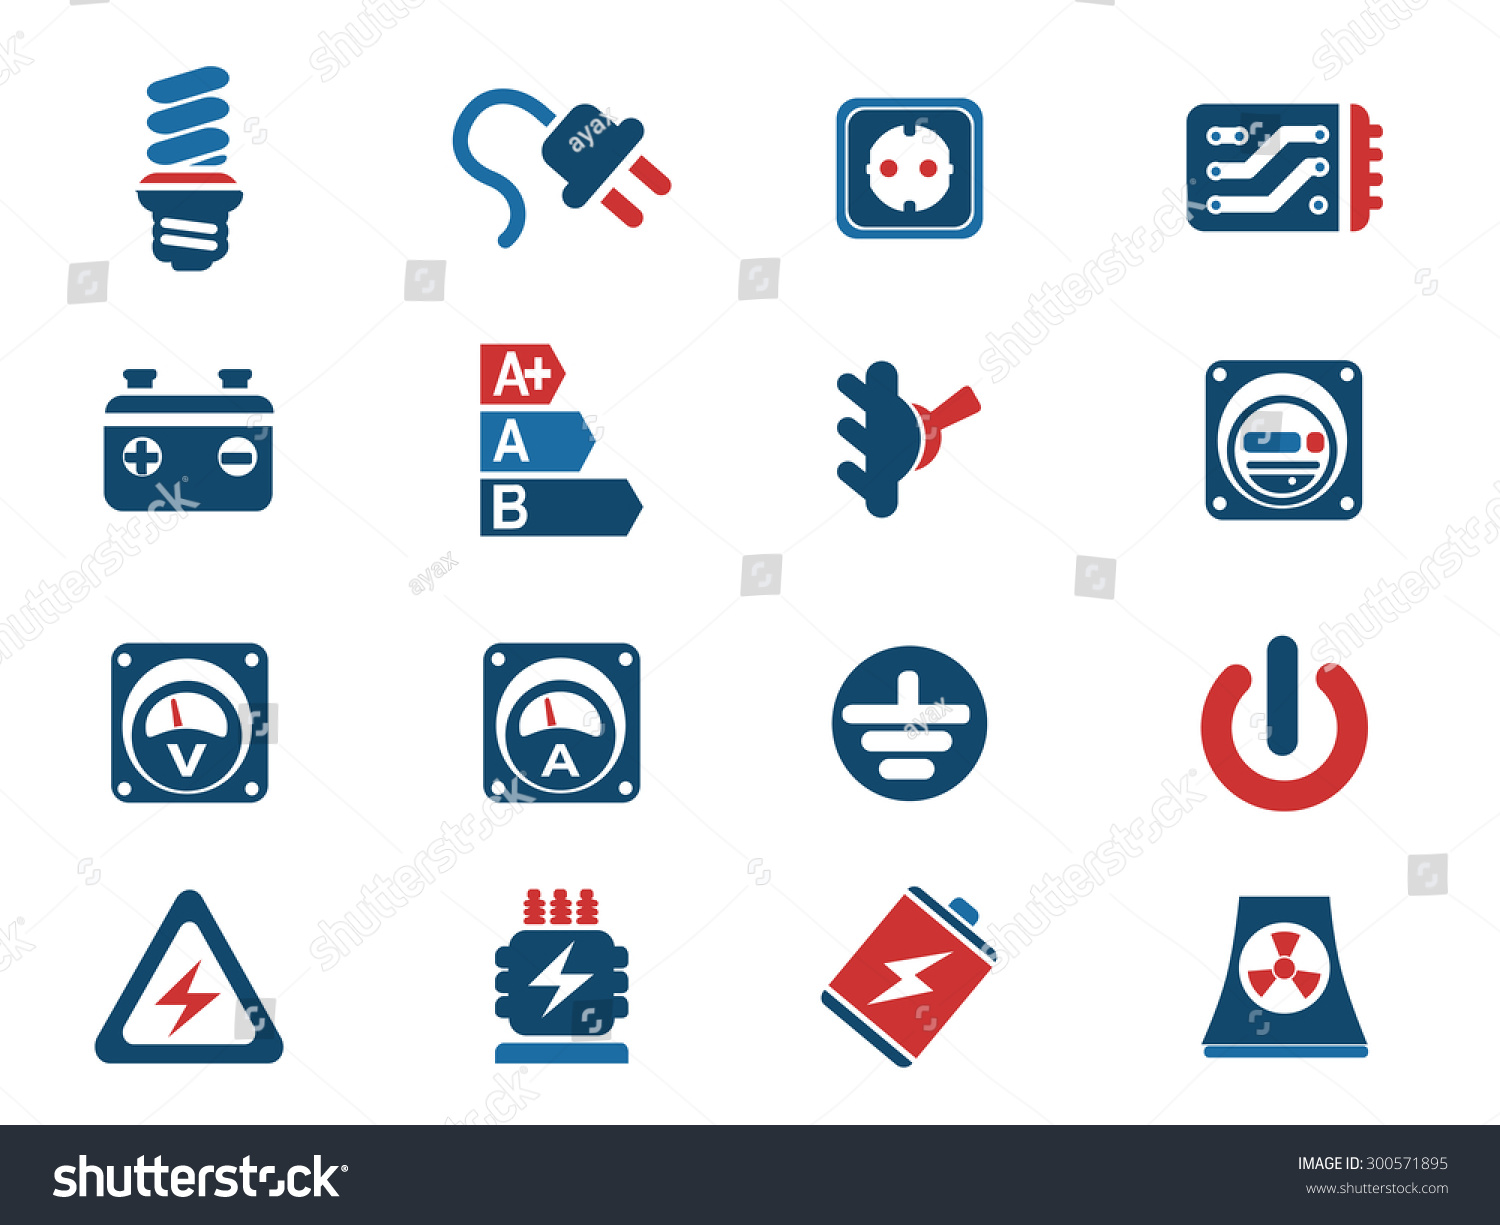 Electricity Icon Simply Symbol Web Icons Stock Vector 300571895 ...